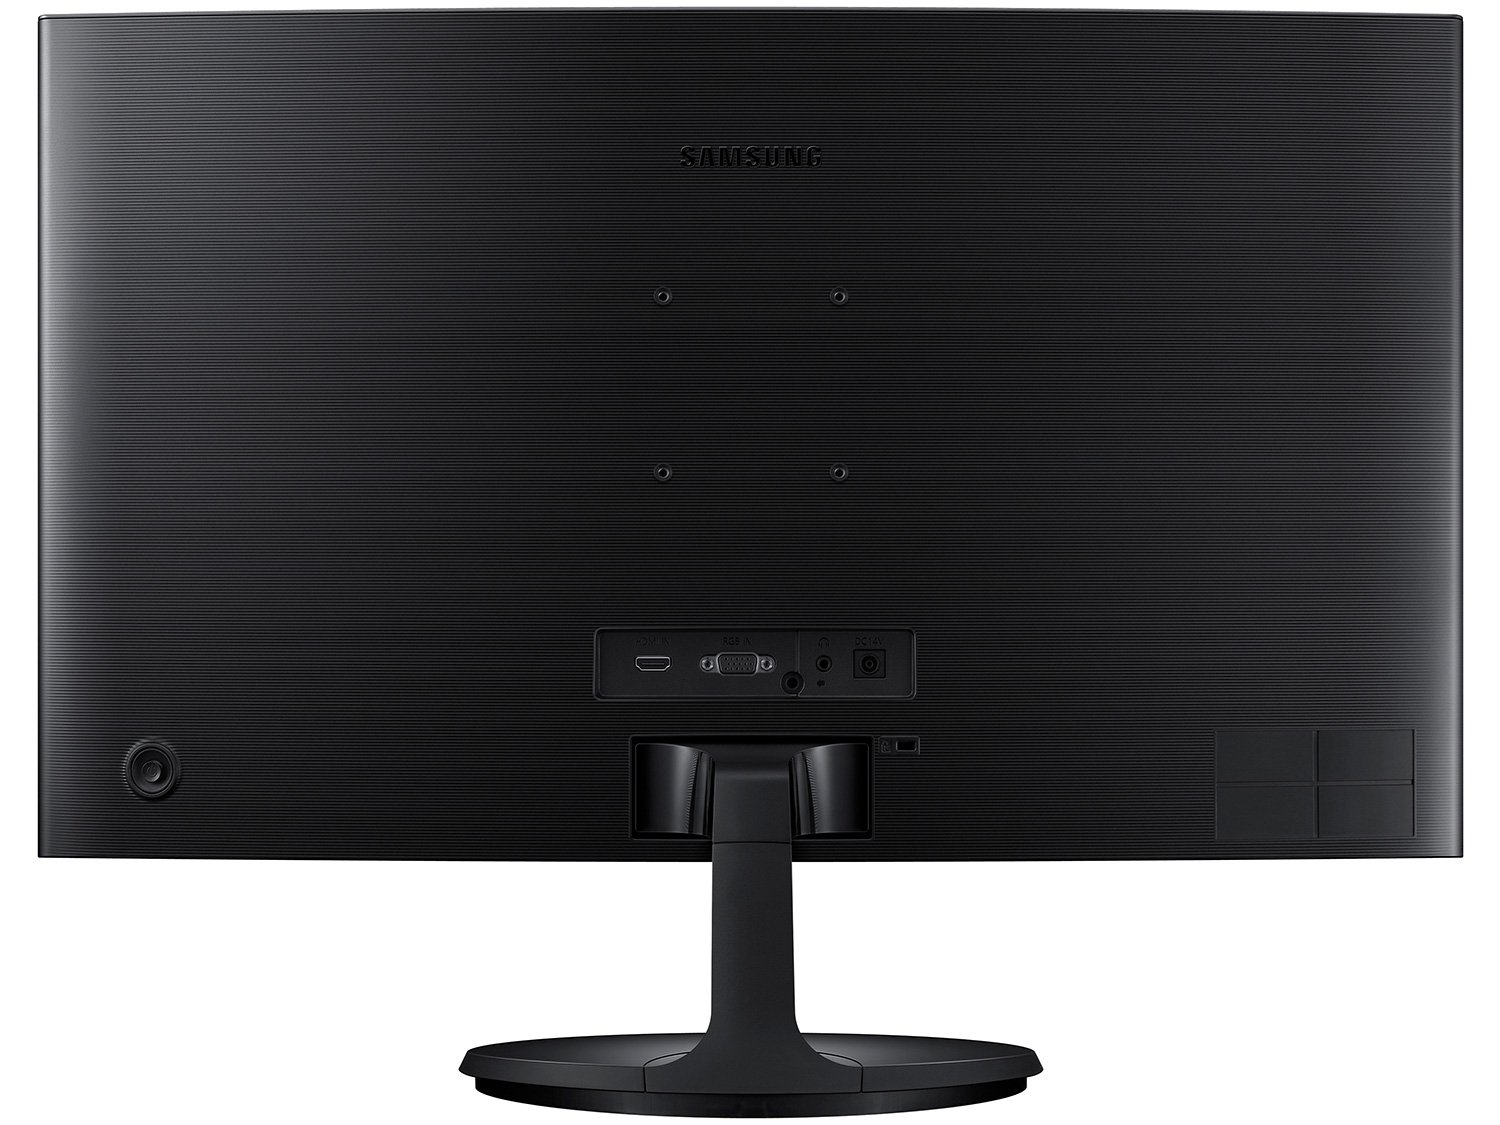 Foto 11 - Monitor para PC Full HD Samsung LED Curvo 24 - C24F390F